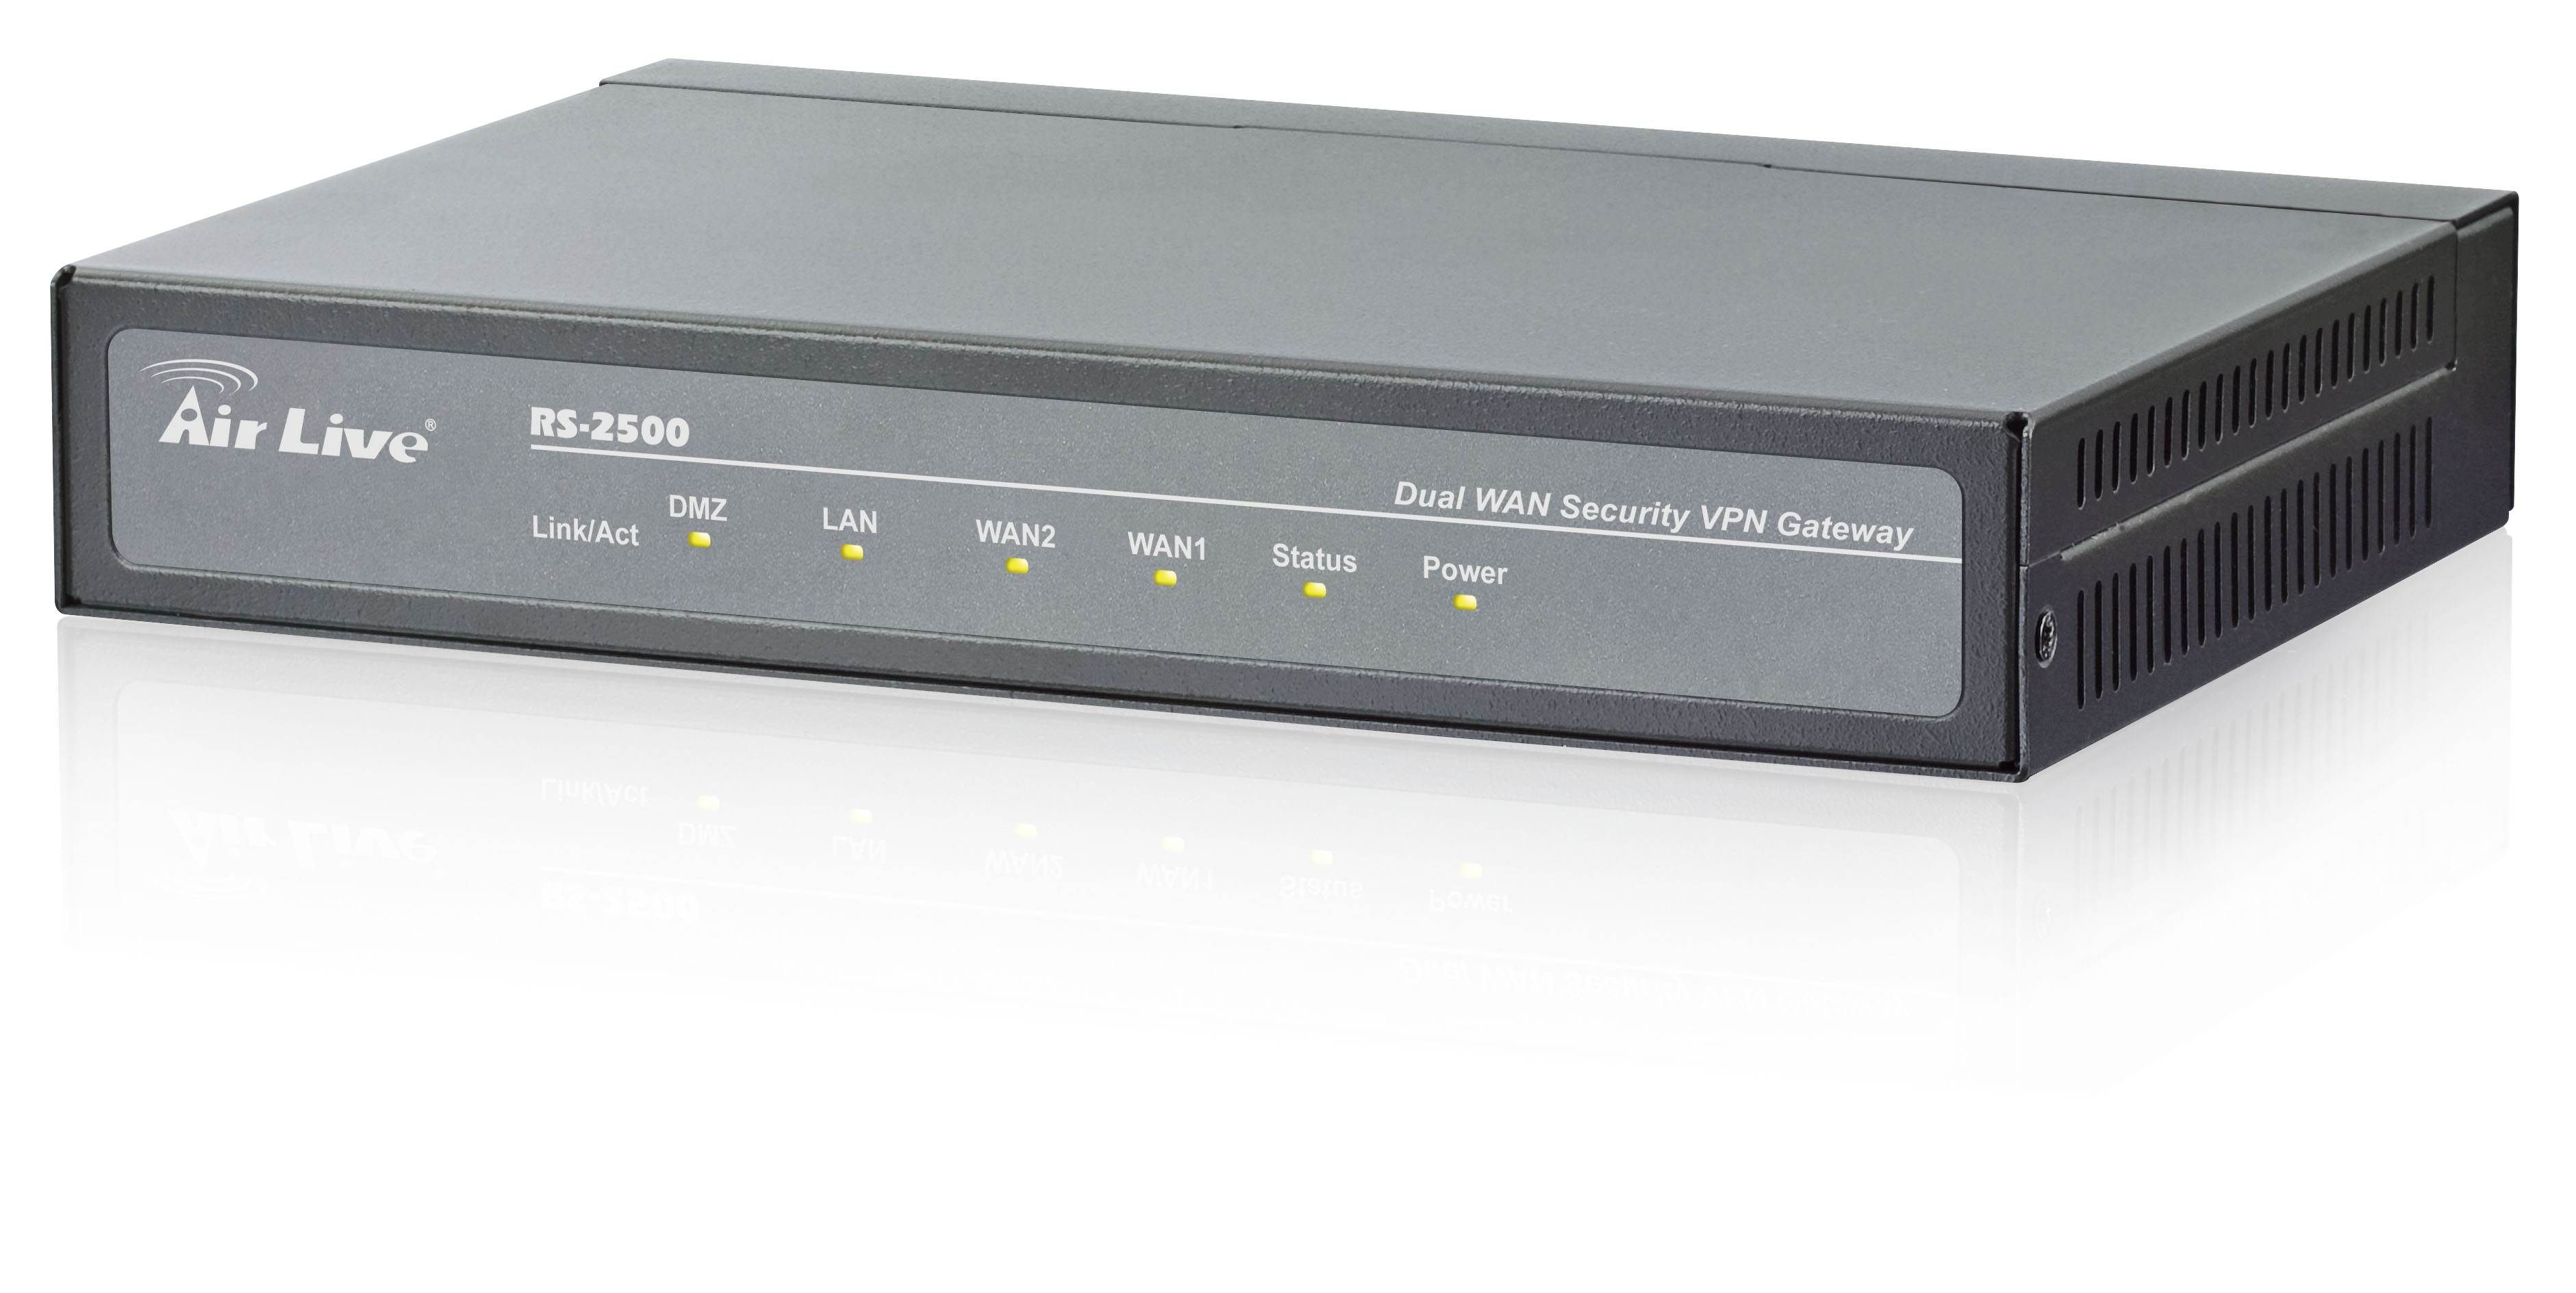 Ενσύρματο AIRLIVE RS-2500 Dual WAN Security VPN Gateway 60001